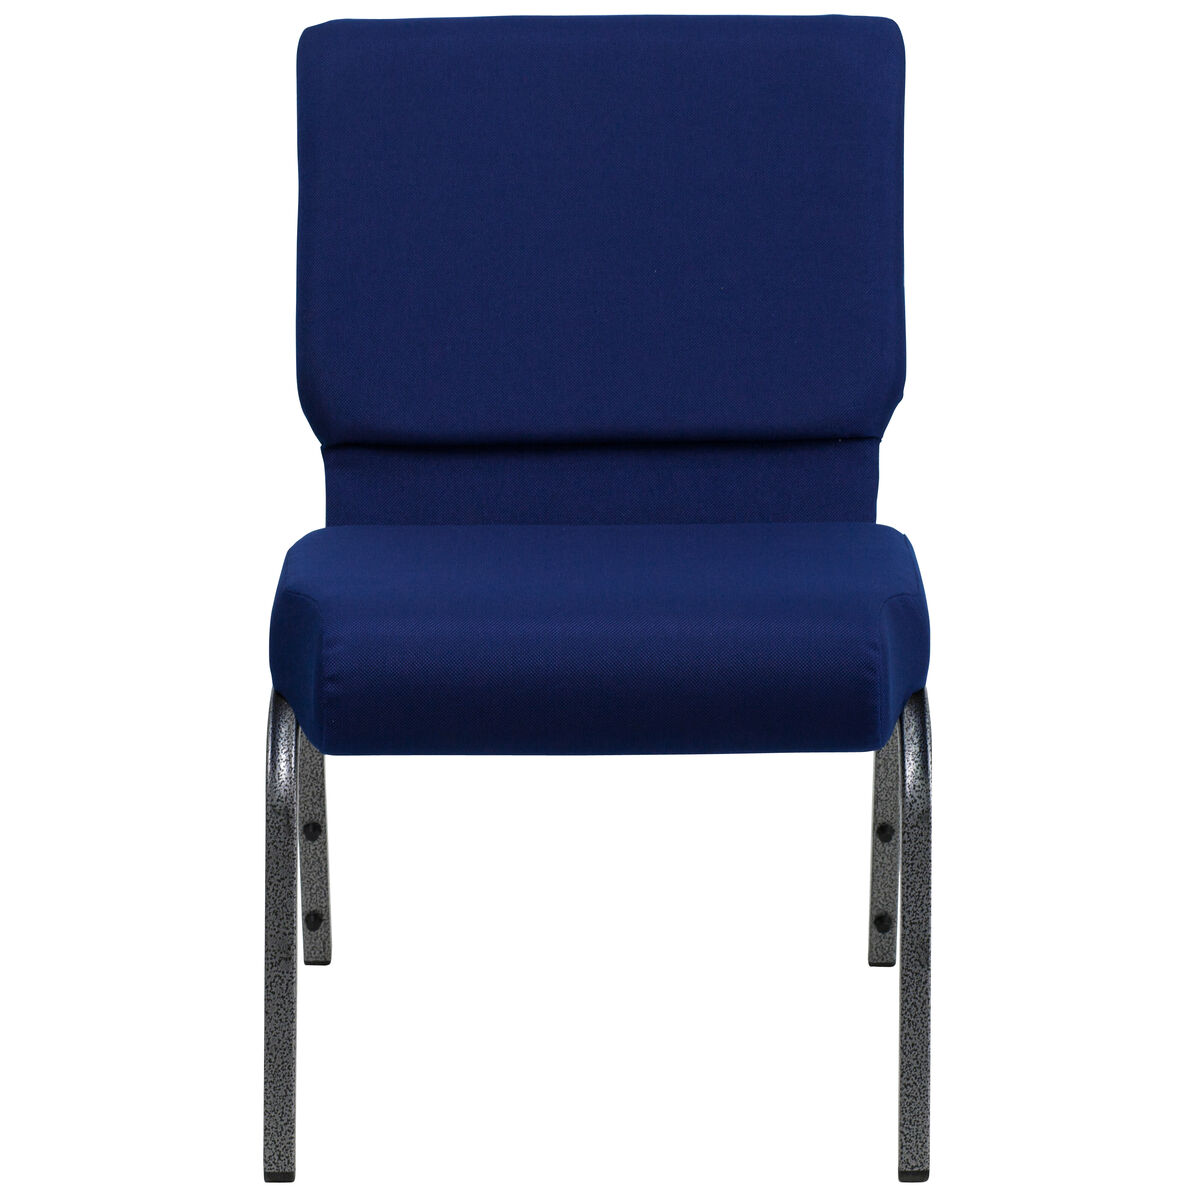 Ordinary Free Church Chairs Furniture #1: FLASH_FURNITURE_FD-CH0221-4-SV-NB24-GG_INSET3.jpg?sw=1200